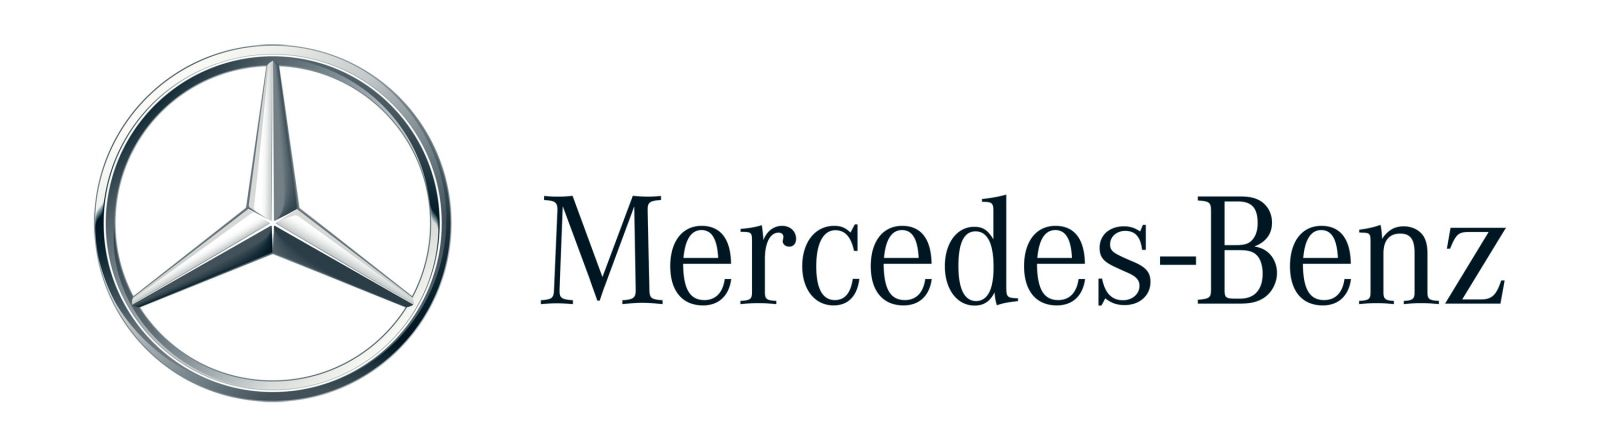 Viet nam supply chain for Mercedes benz chain